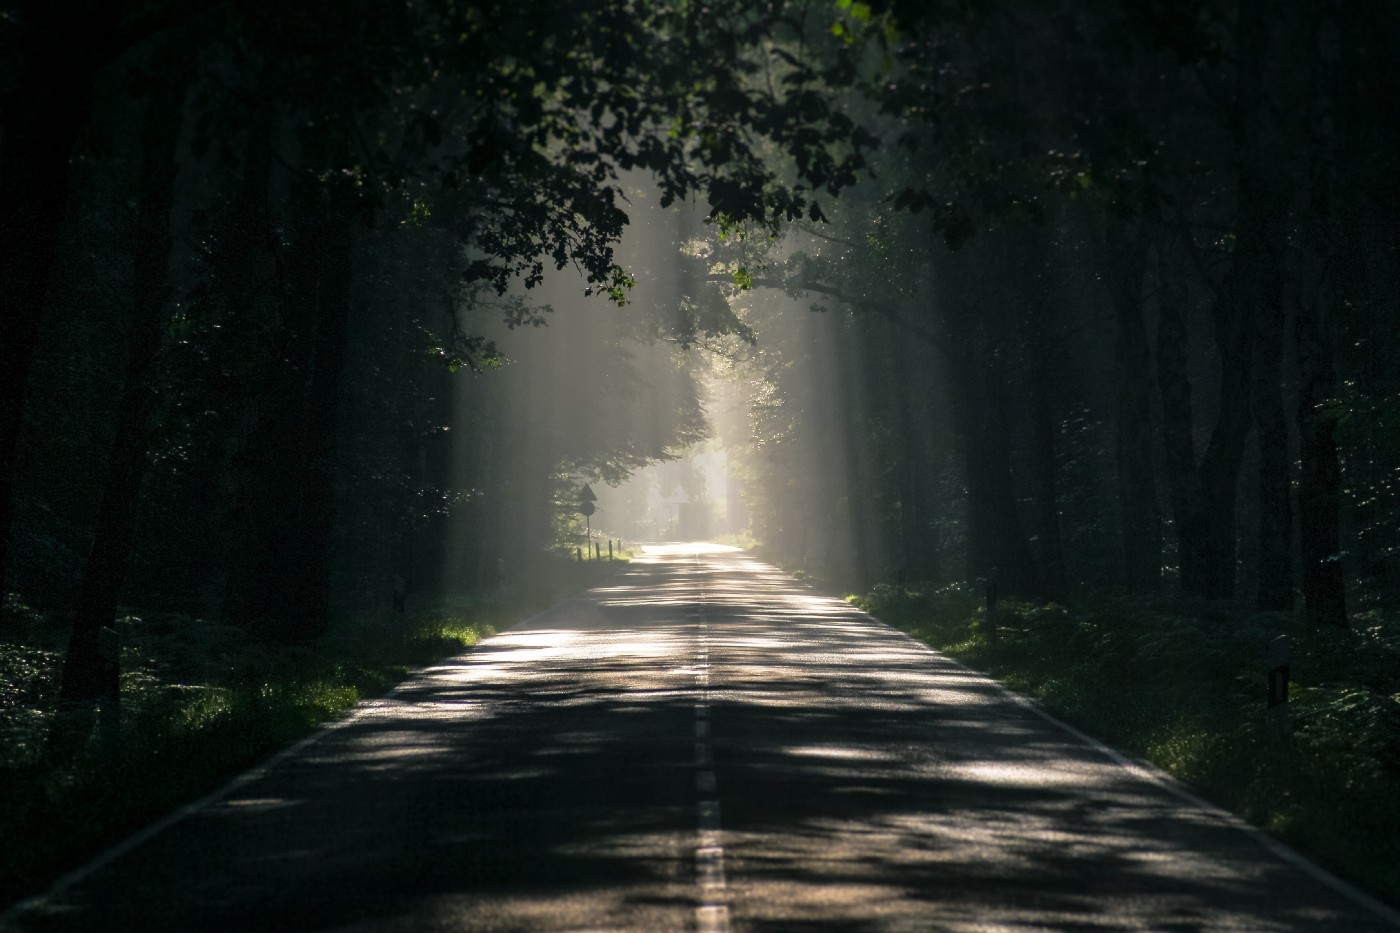 A mysterious road ahead